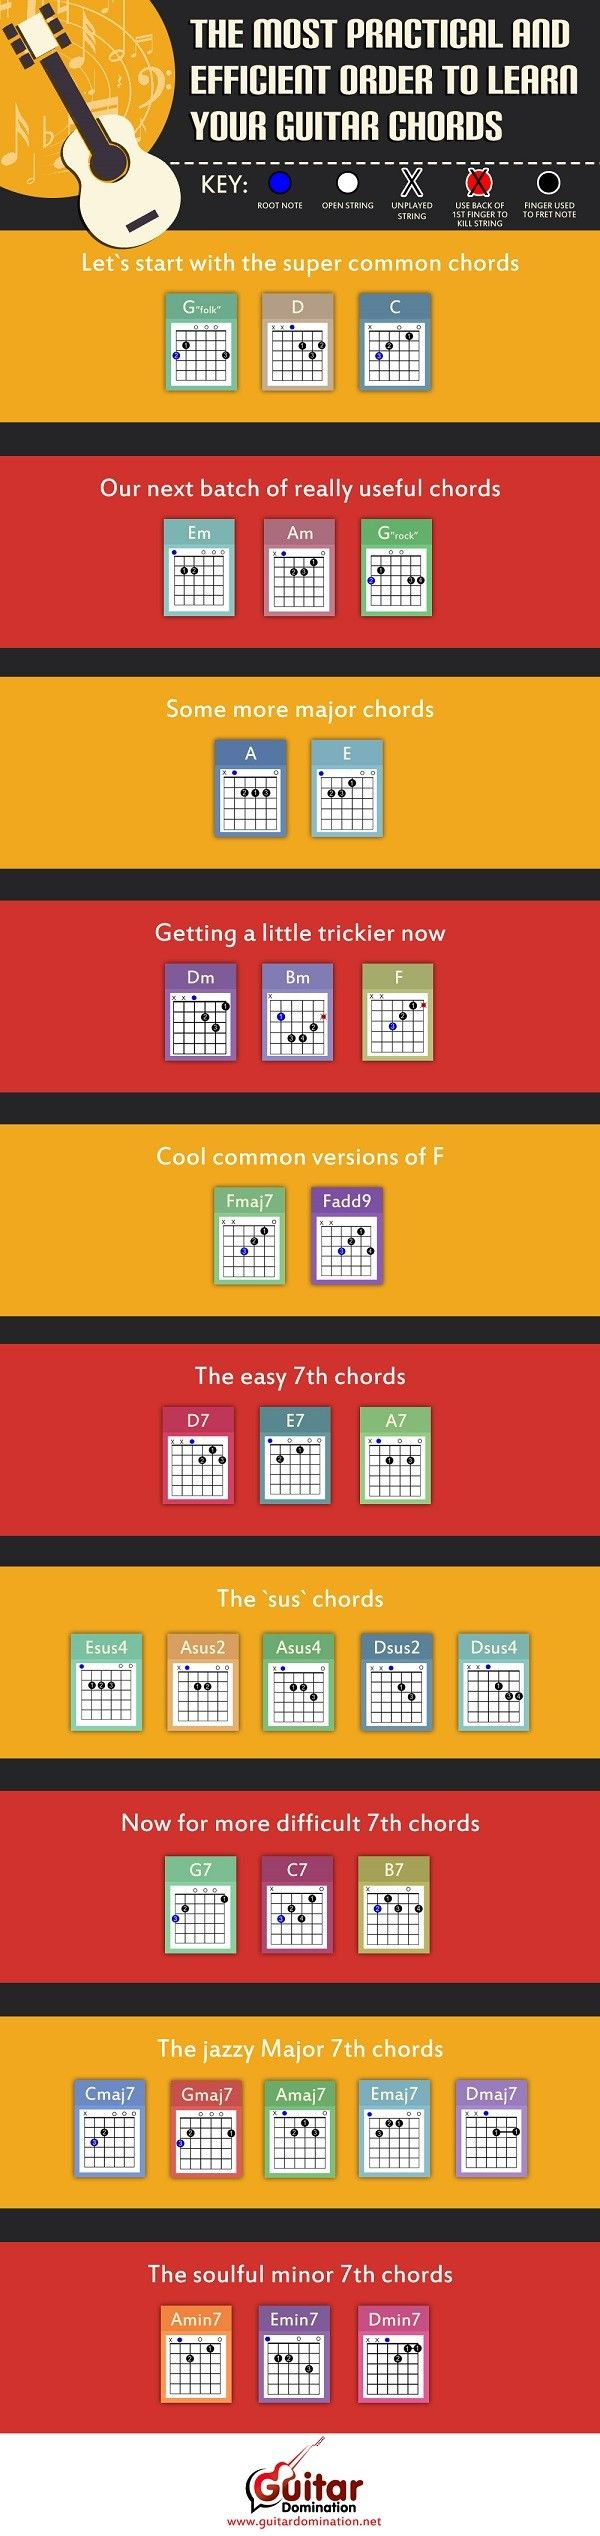 Essential Chords Every Guitarist Should Know Good To Know